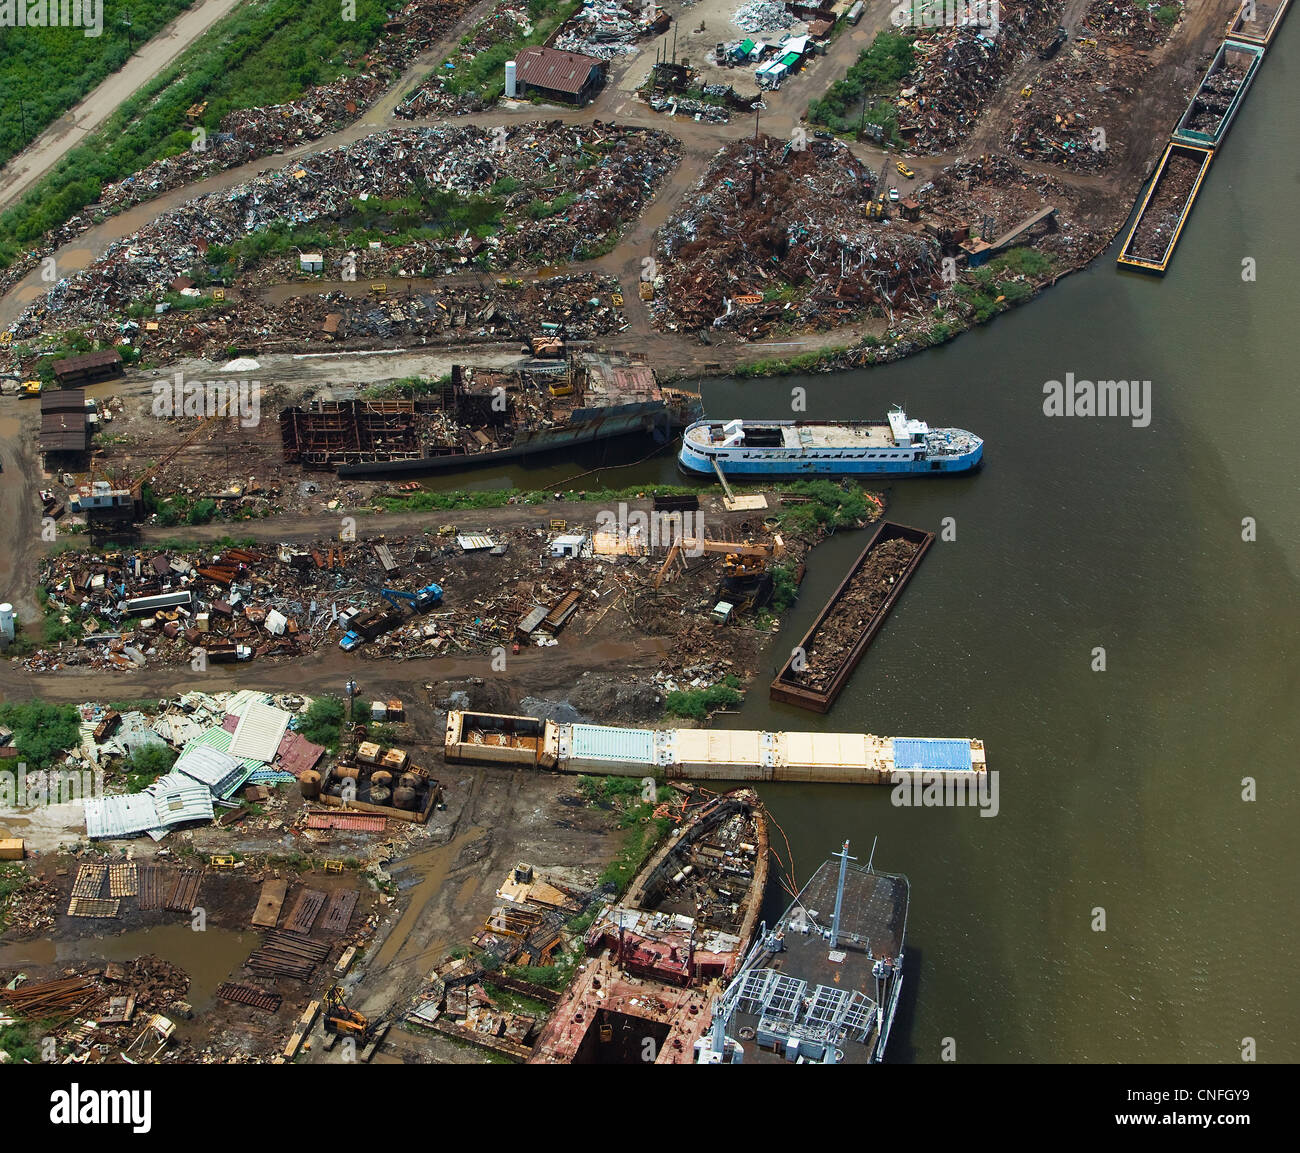 aerial photograph of rubble trash lower 9th Ward New Orleans hurricane Katrina aftermath - Stock Image